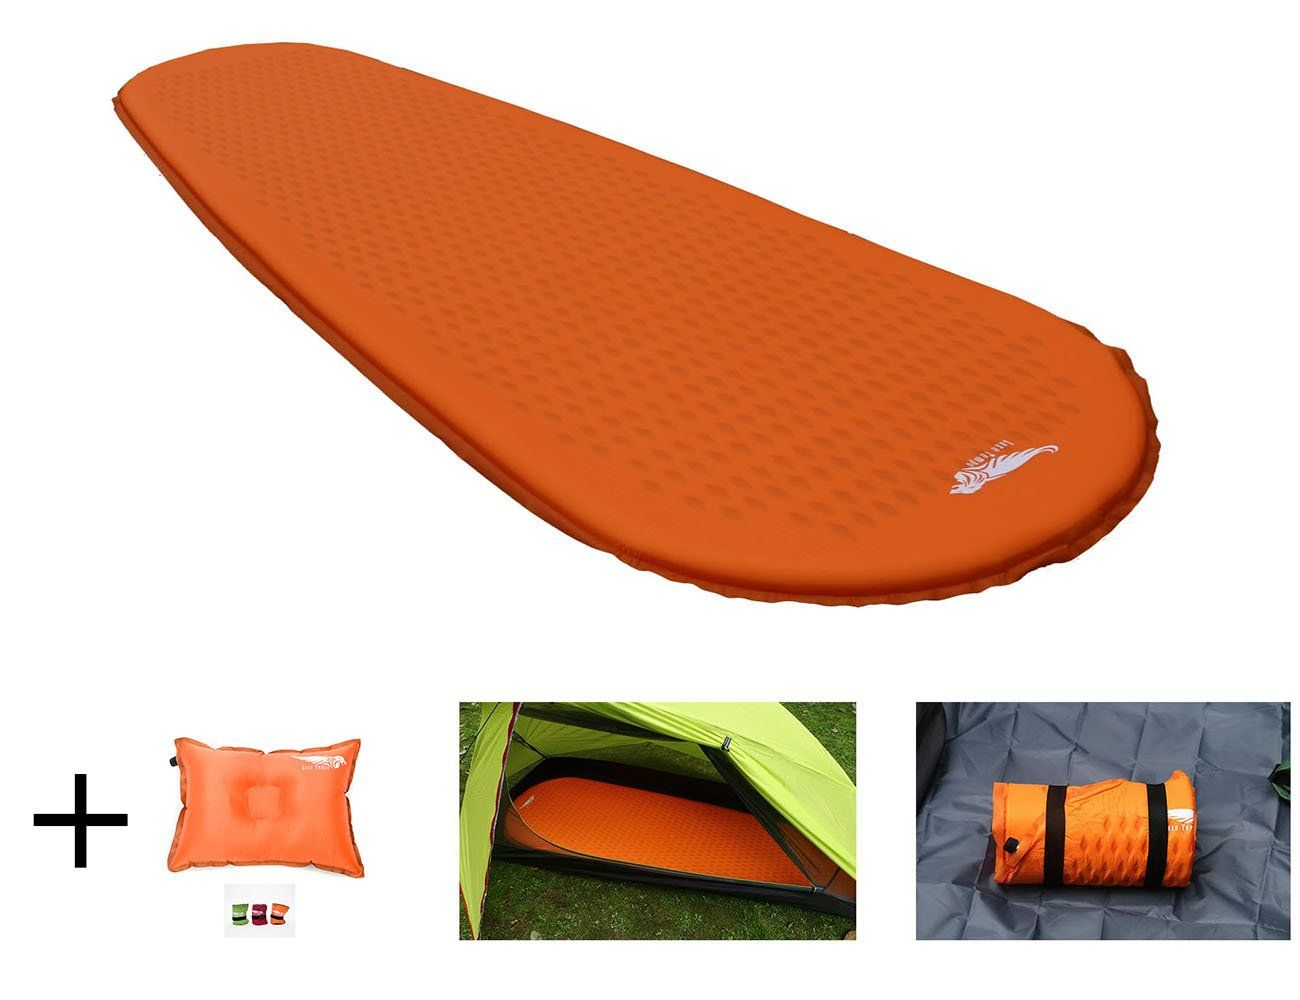 Luxe Tempo Ultralight Self Inflating Sleeping Pad Backpacking 38 Oz With Free Pillow Foam Camping Mattress Mat For Thru Hike Full Length Camping Mattress 1 5 In Camping Mattress Sleeping Pads Mattress